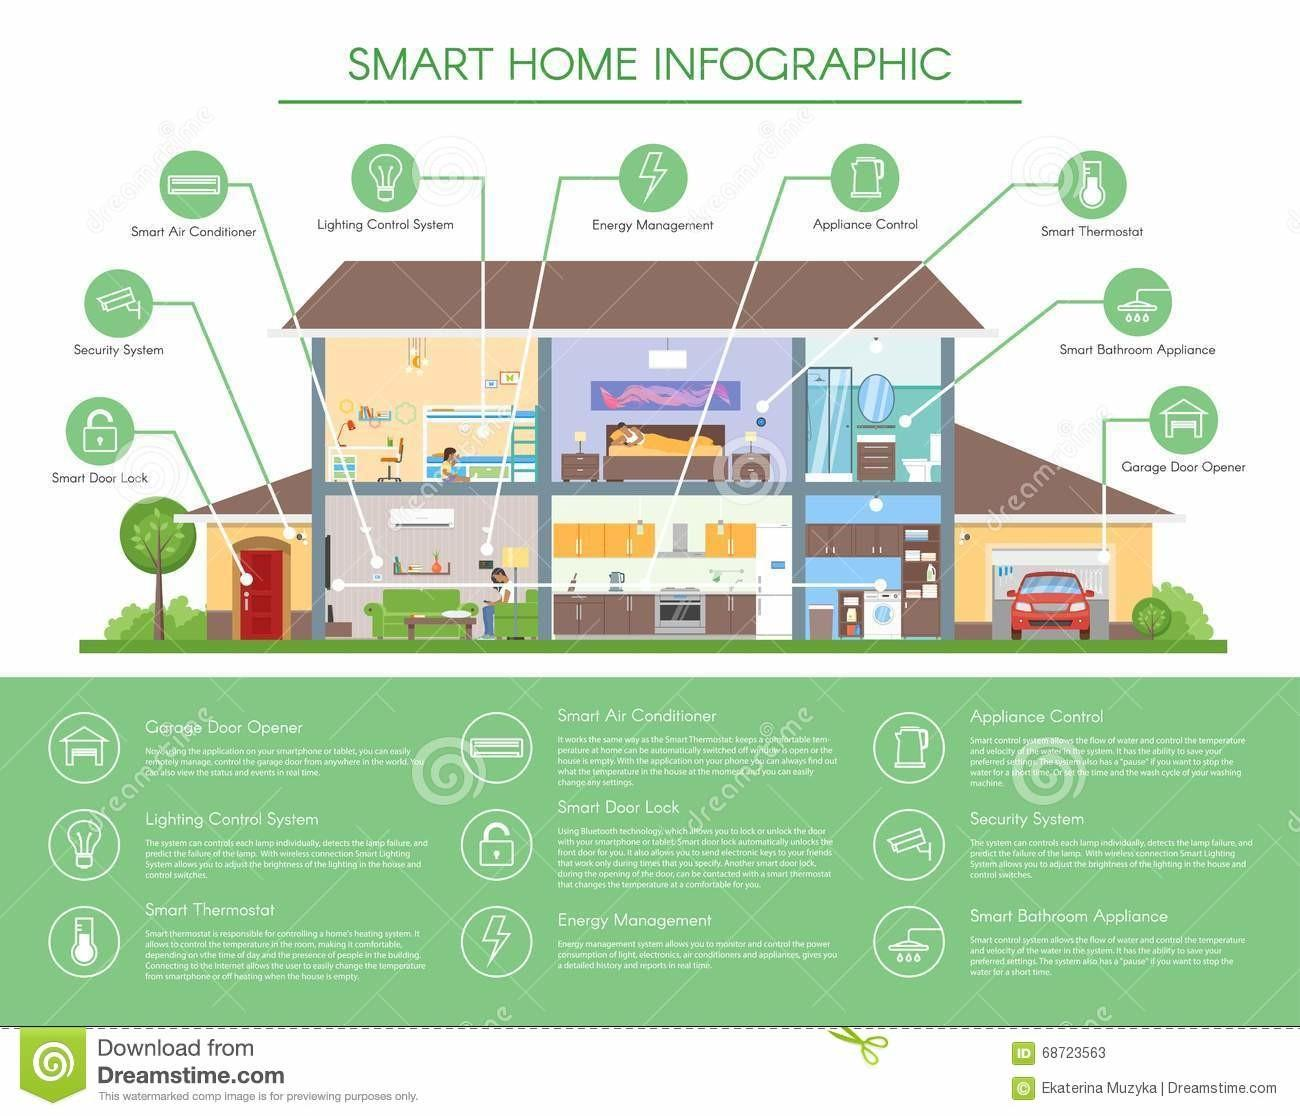 Smart Home Infographic Concept Vector Illustration